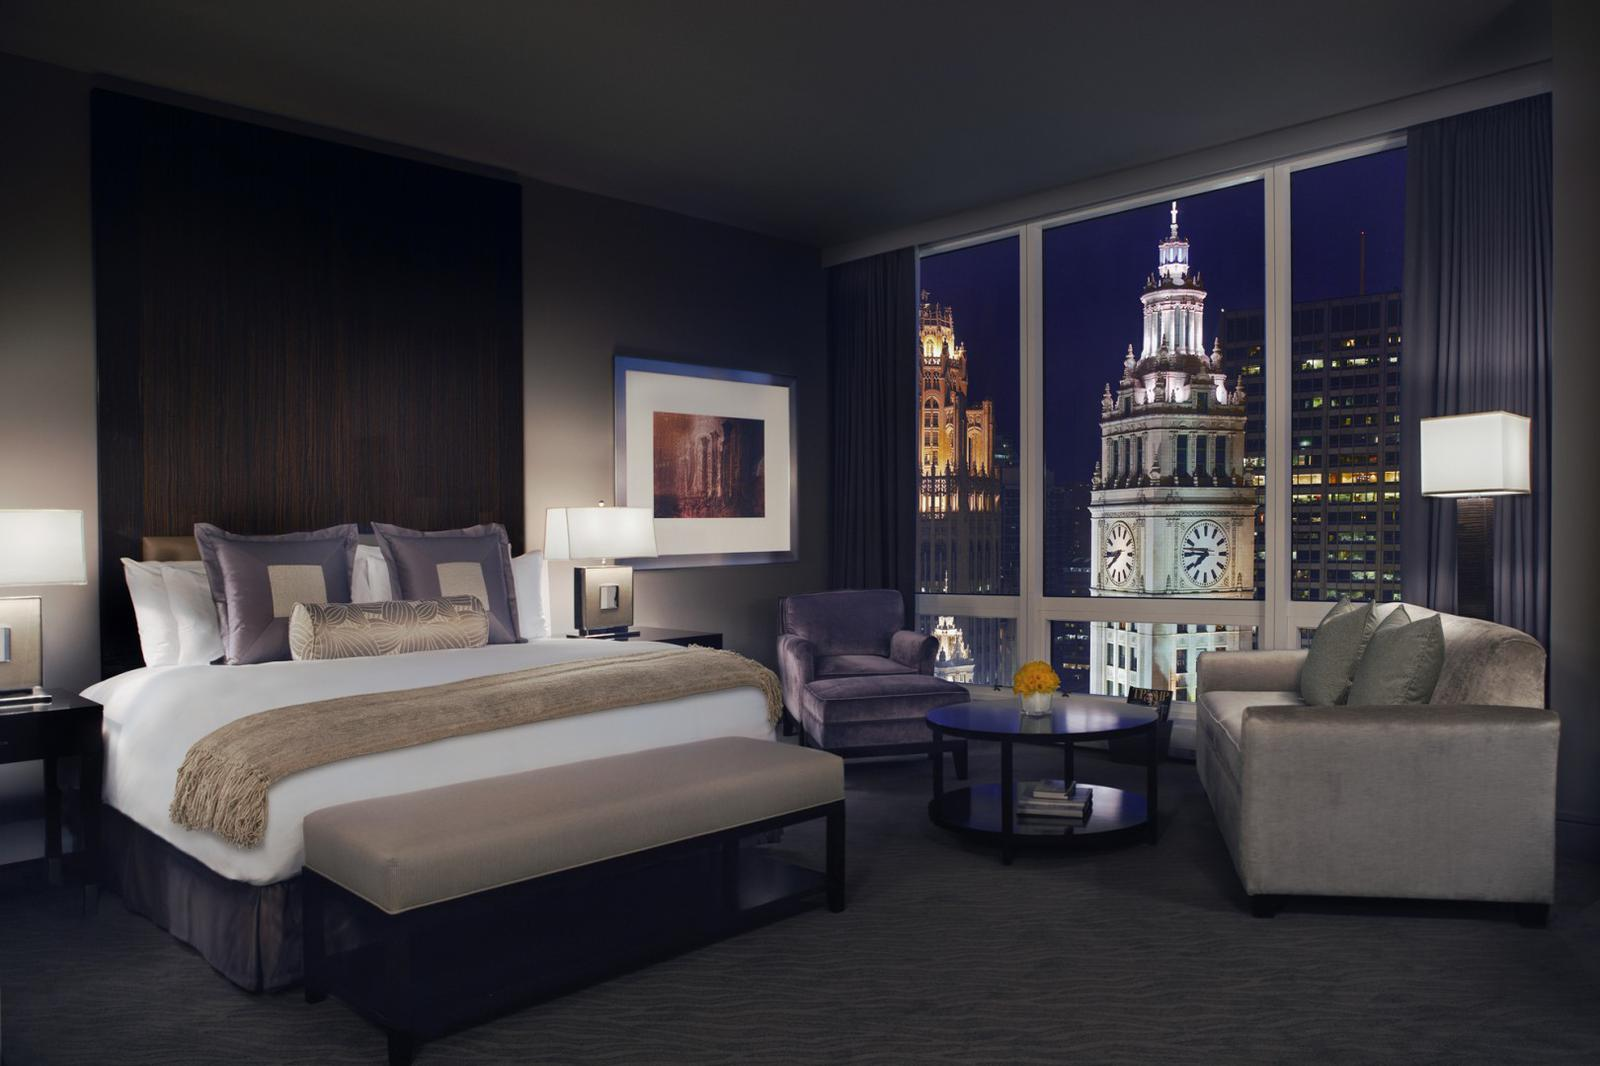 Hotels in Chicago, Il.